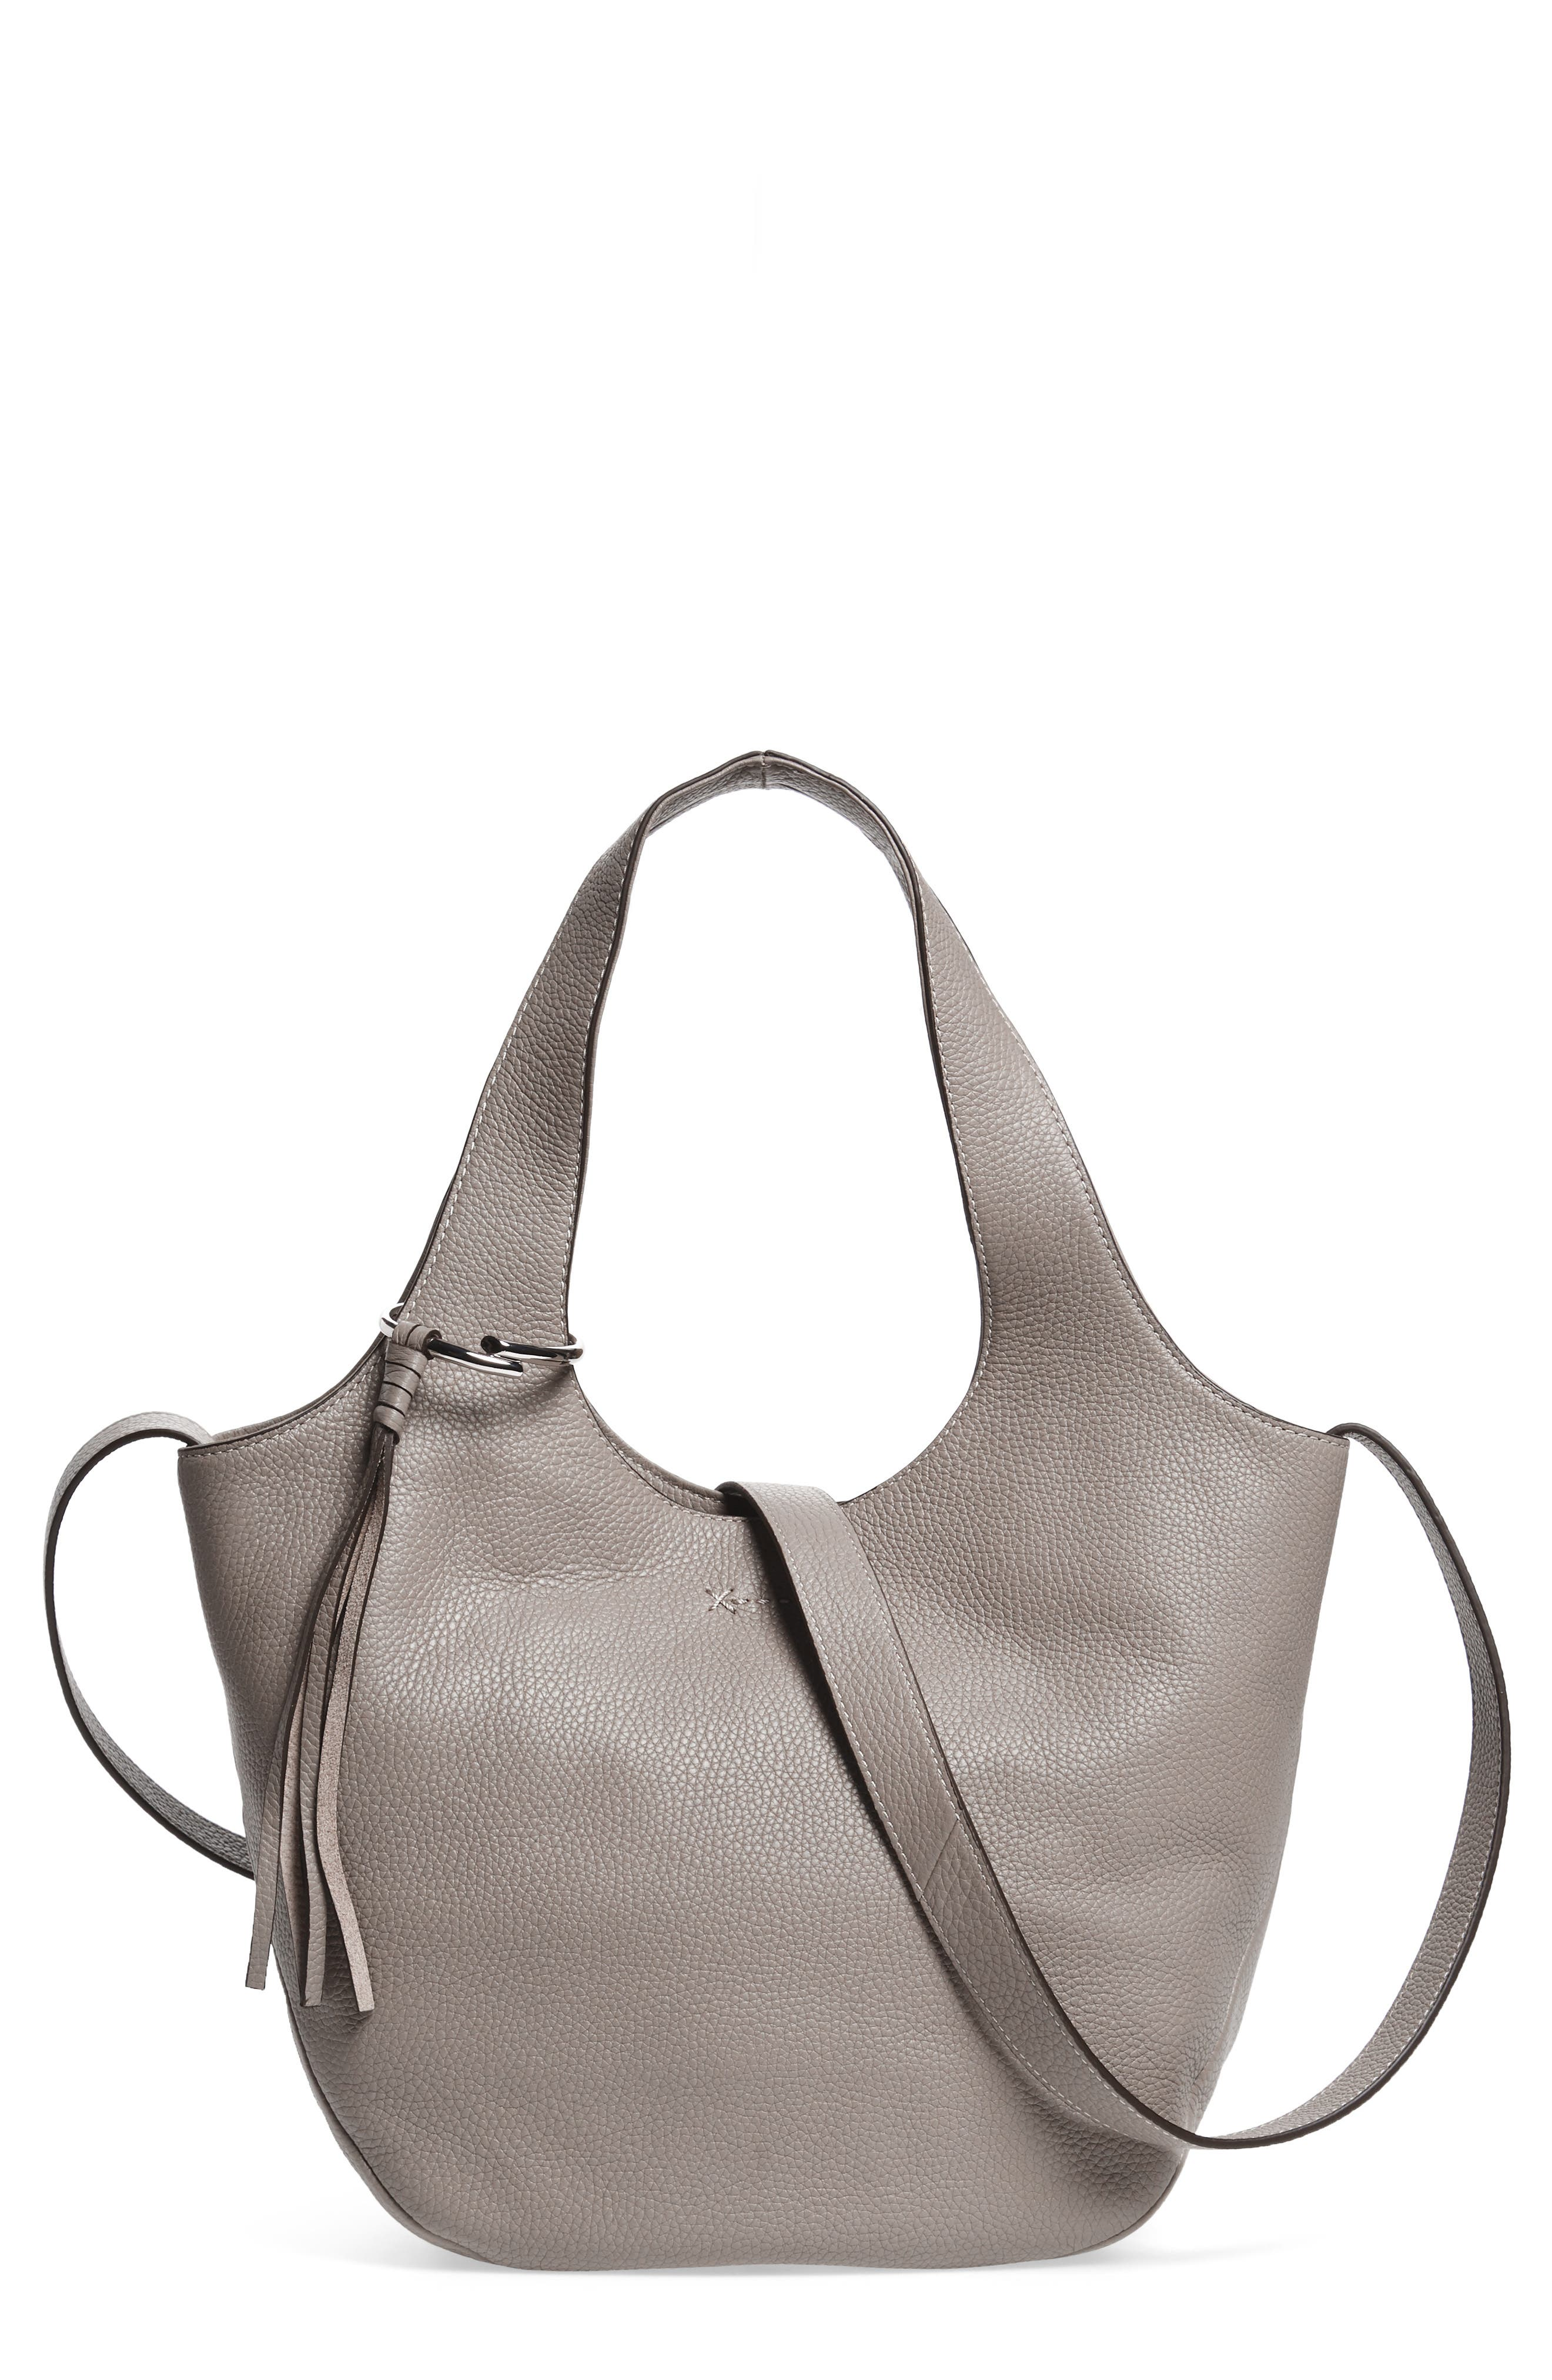 Main Image - Elizabeth and James Small Finley Leather Shopper